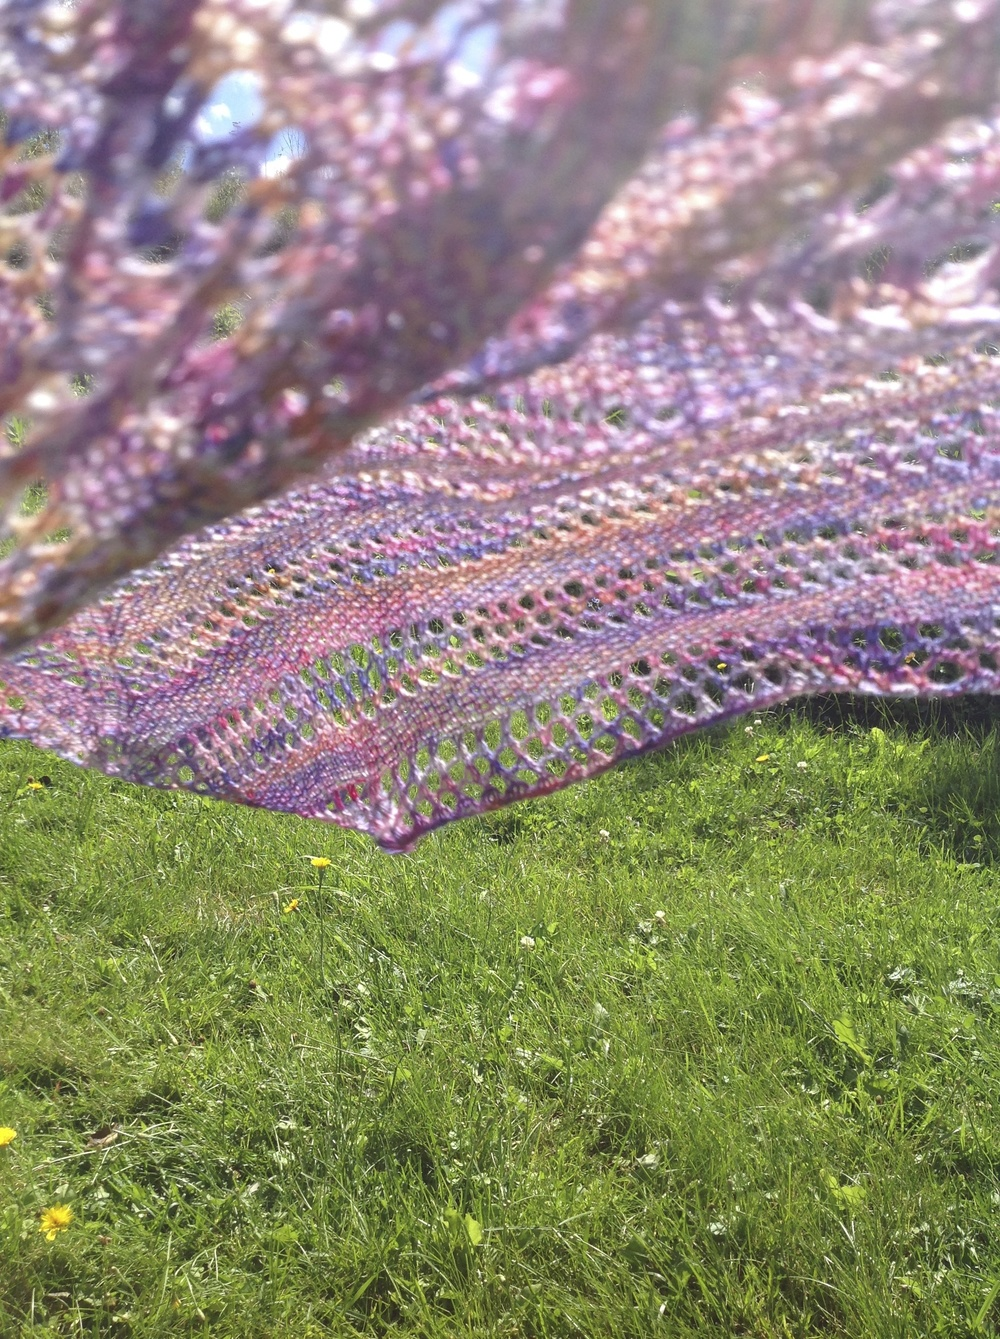 Linen & Lace shawl, laceweight version, by India Tresselt, free pattern here